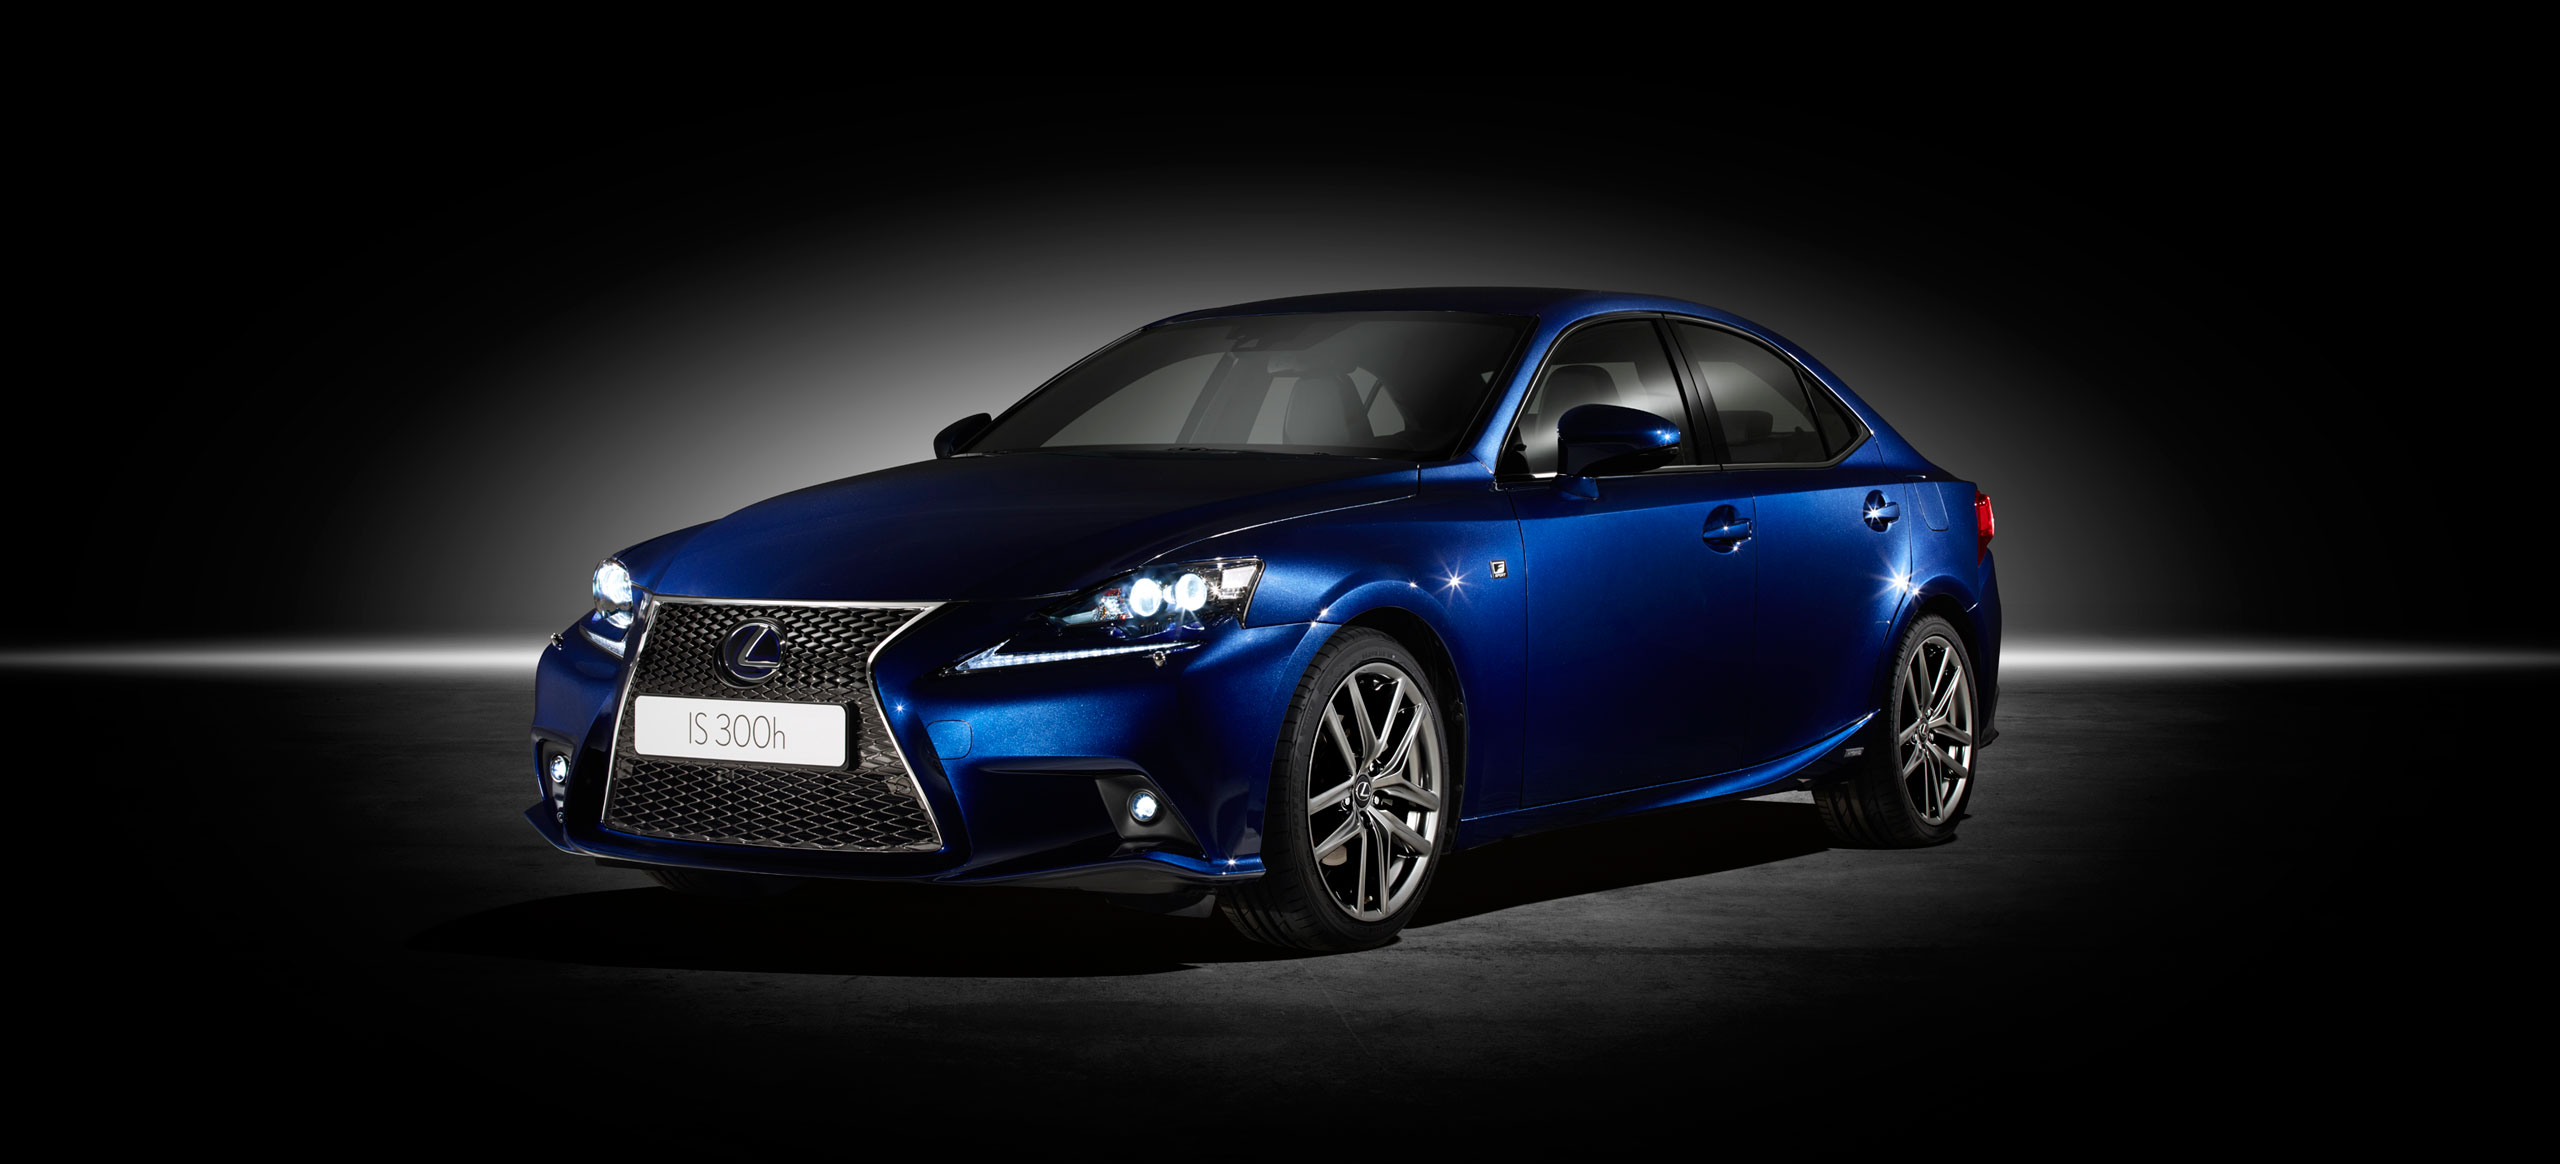 lexus is 300h f sport introduced at geneva motor show lexus enthusiast. Black Bedroom Furniture Sets. Home Design Ideas